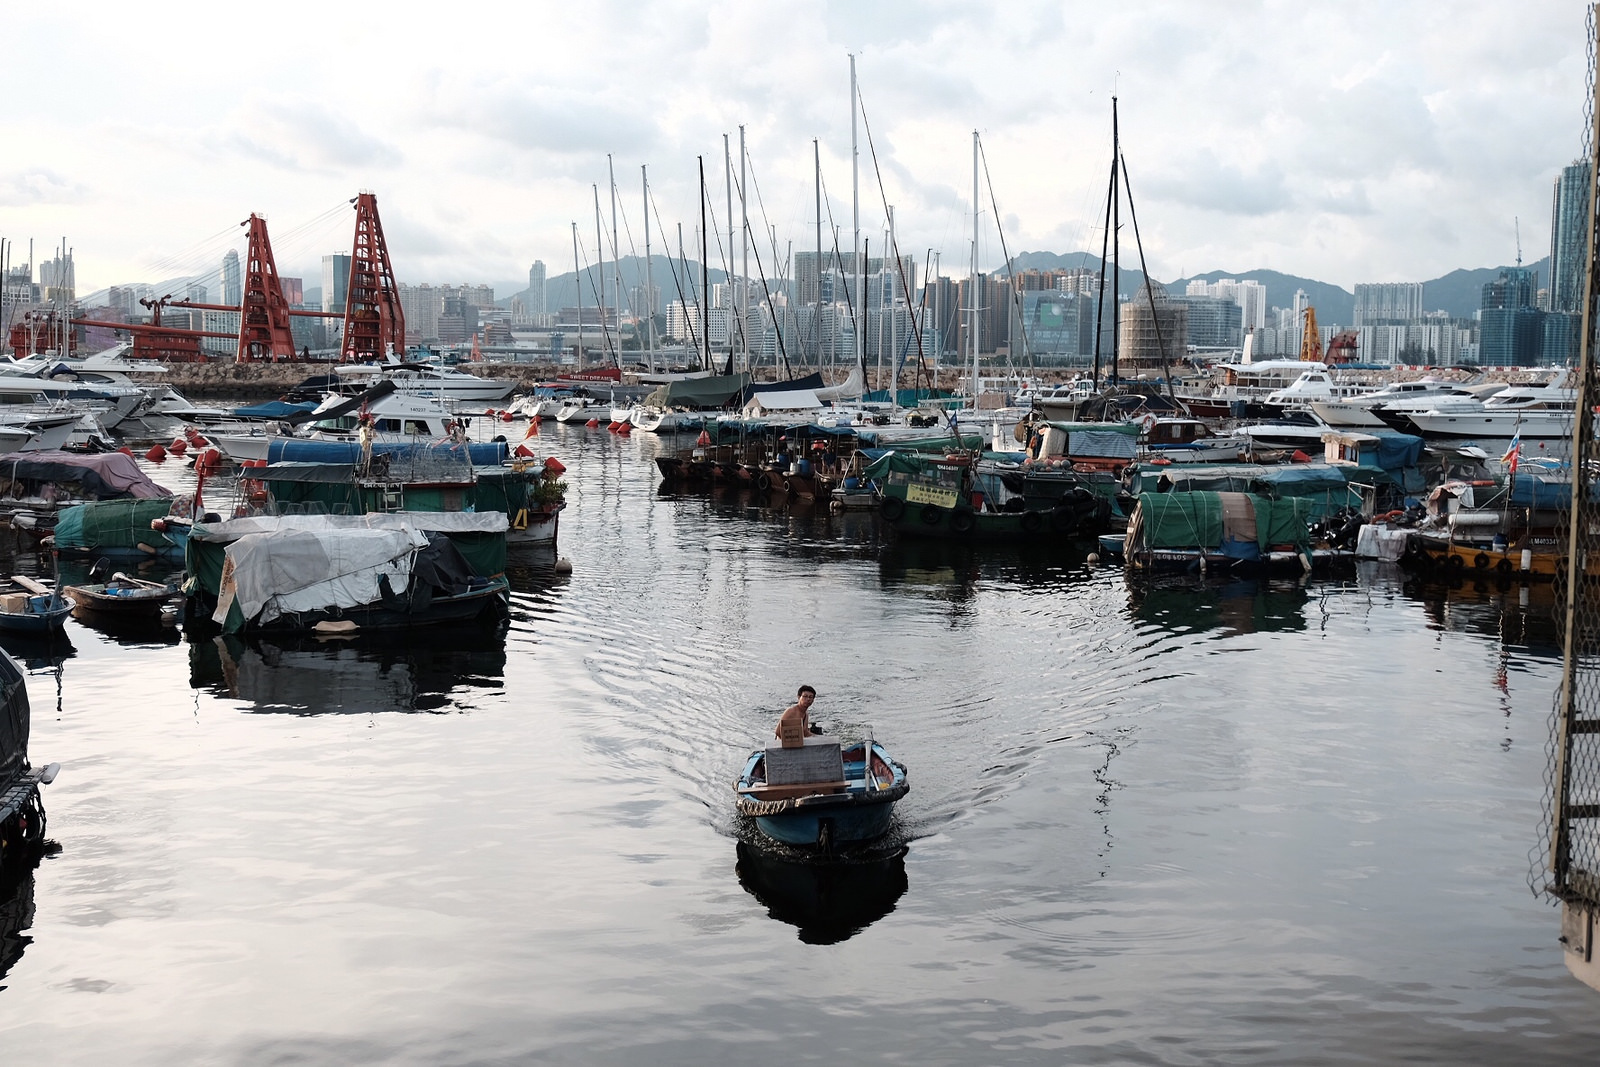 Causeway Bay Typhoon Shelter, an eclectic collection of seacraft located adjacent to an area formerly known as East Point.